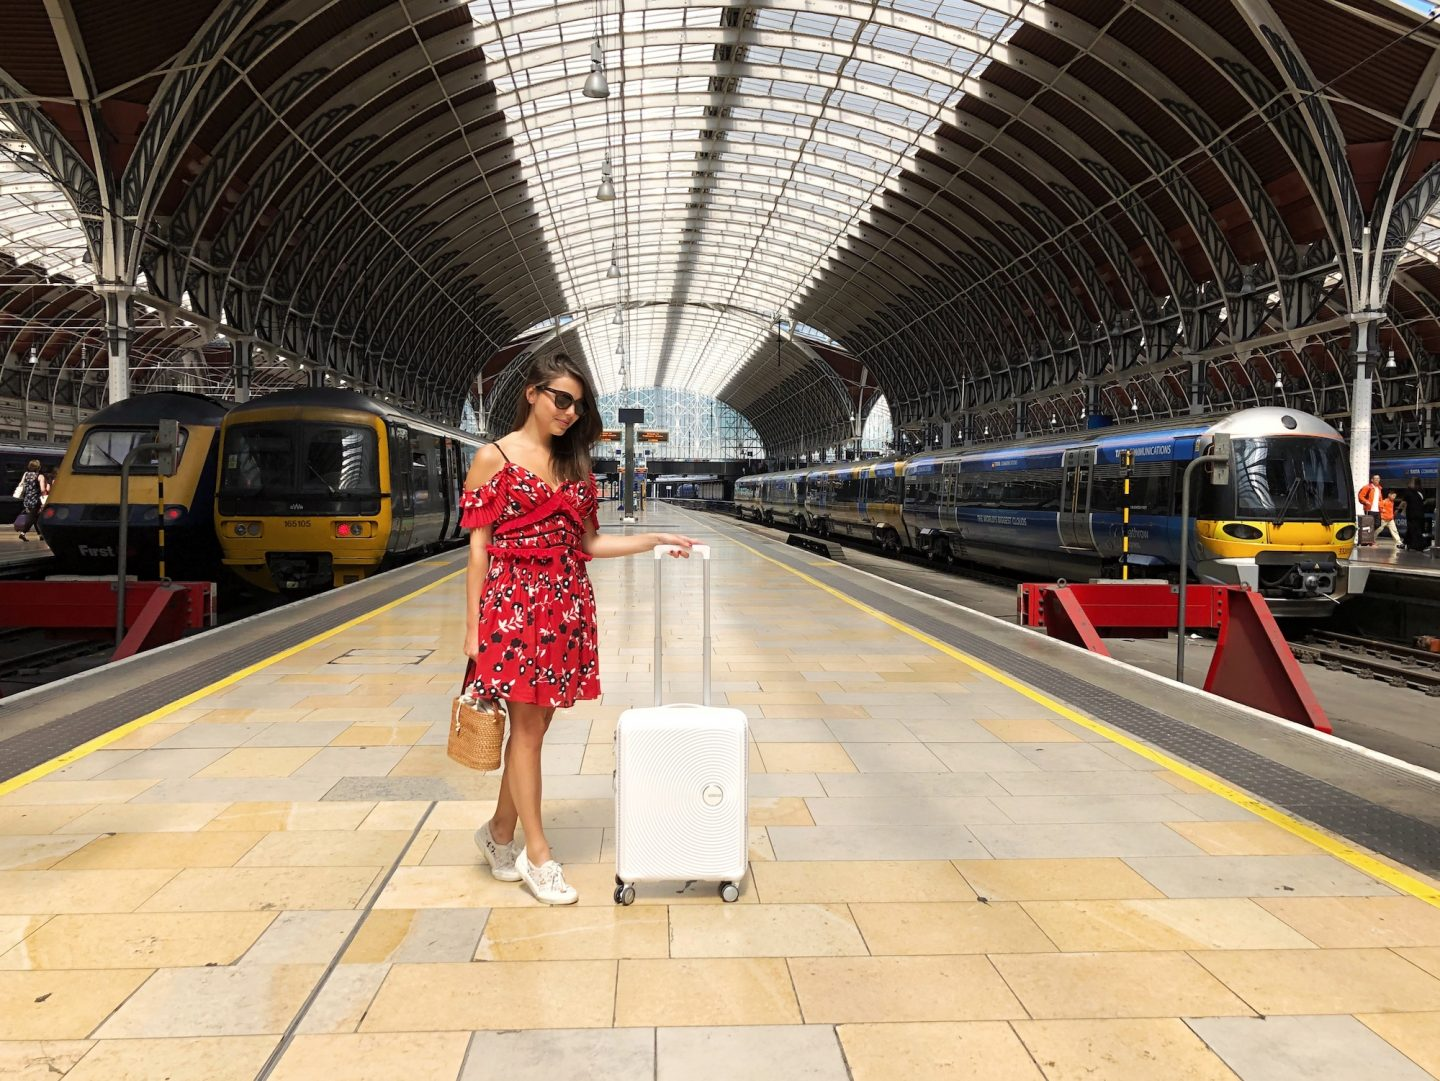 How a good carry on suitcase changed my way of travelling, in better.